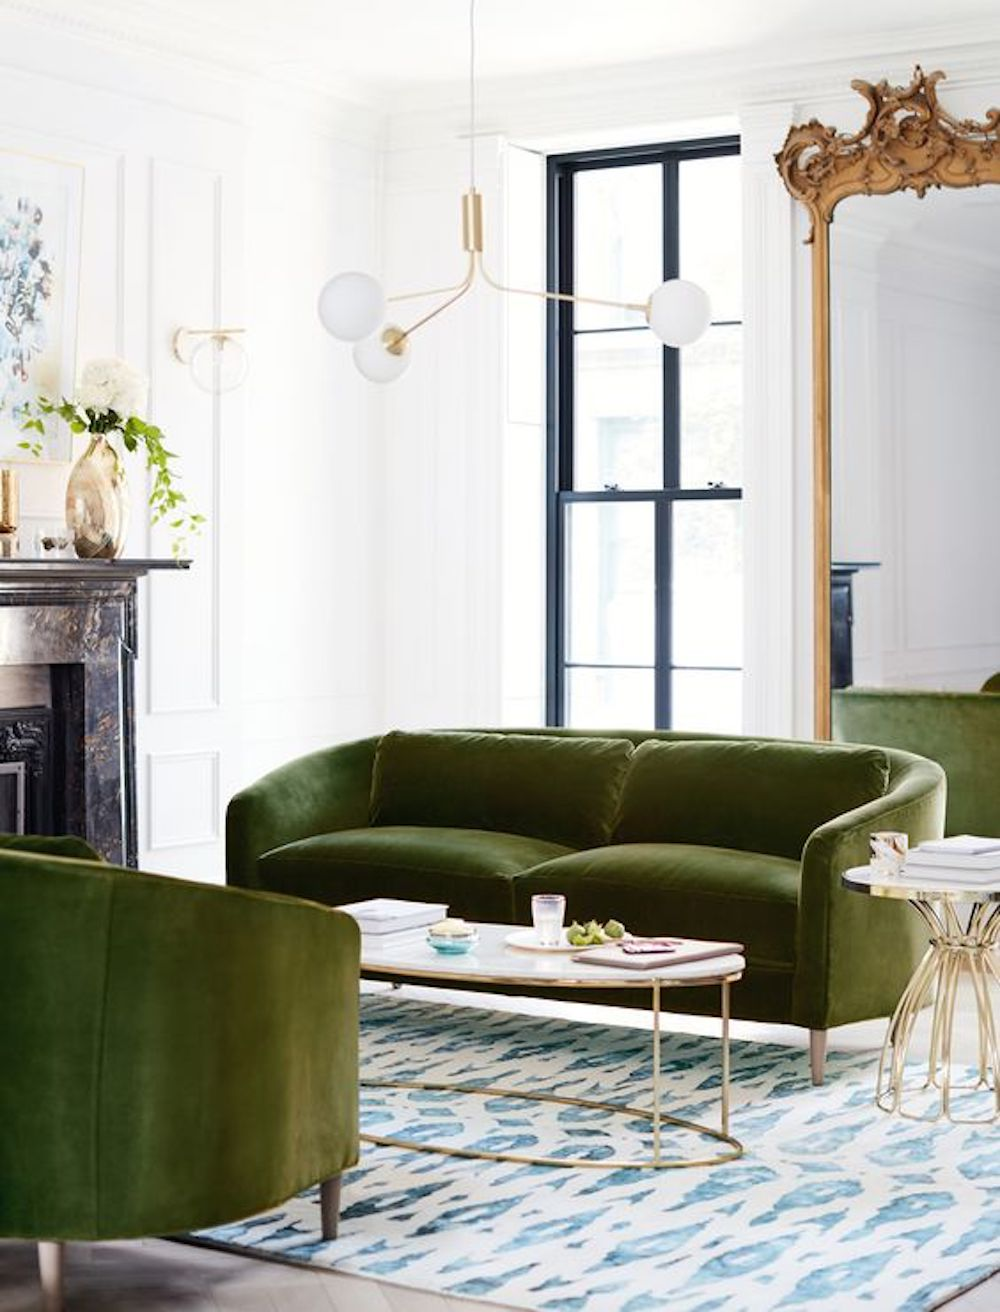 Anthropologie Corinne Sofas in Olive Velvet || Olive green colour inspiration by First Sense